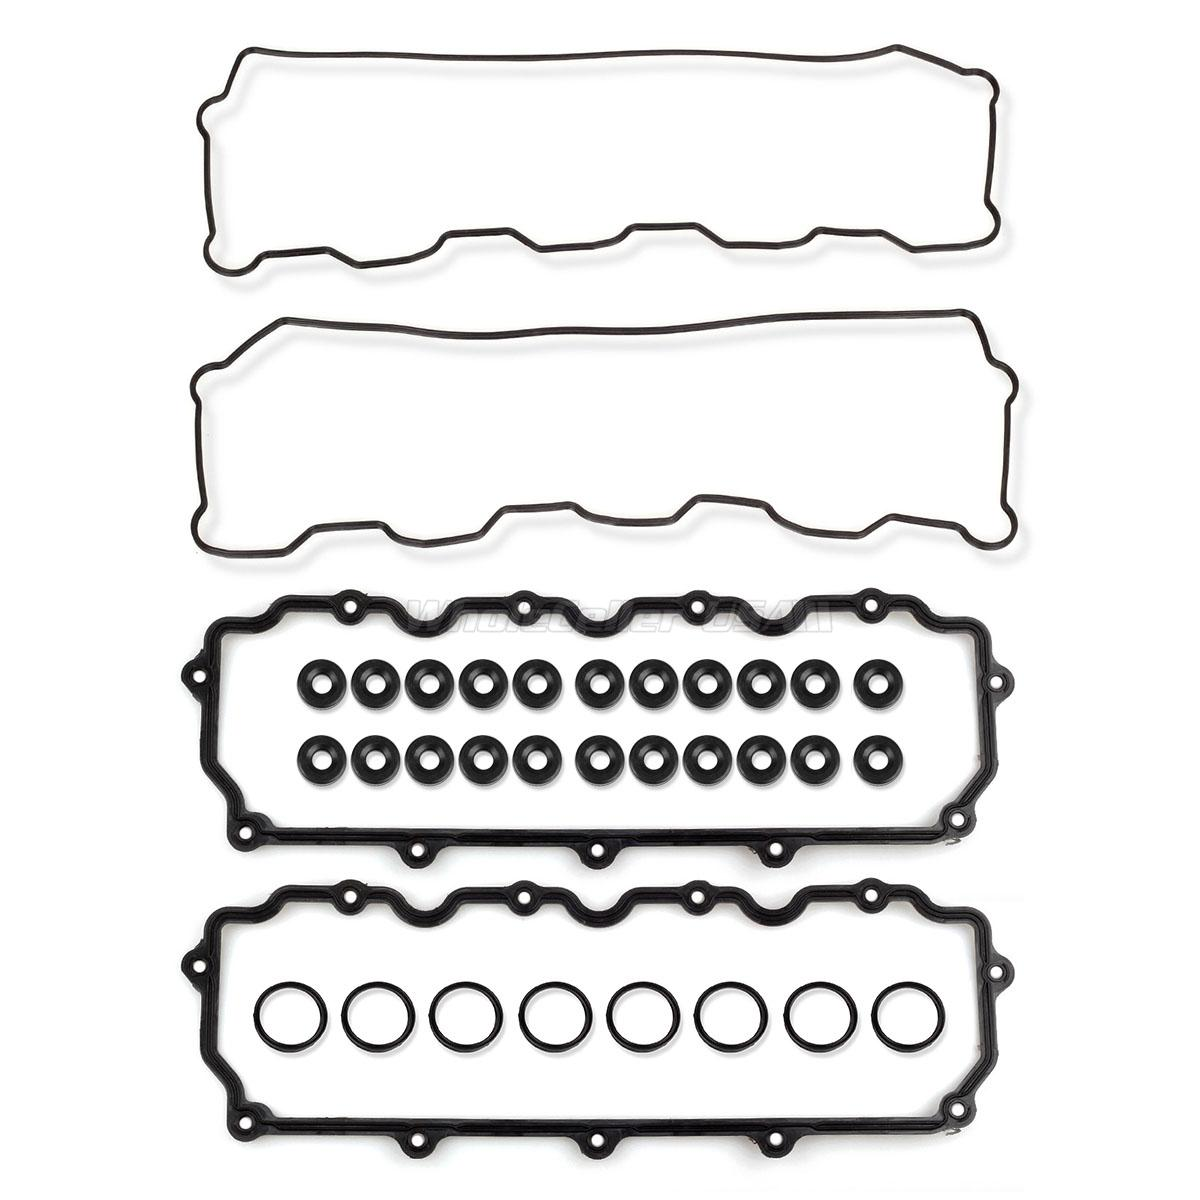 Valve Cover Gaskets Fits Ford F 250 F 350 F 550 E 350 6 0l